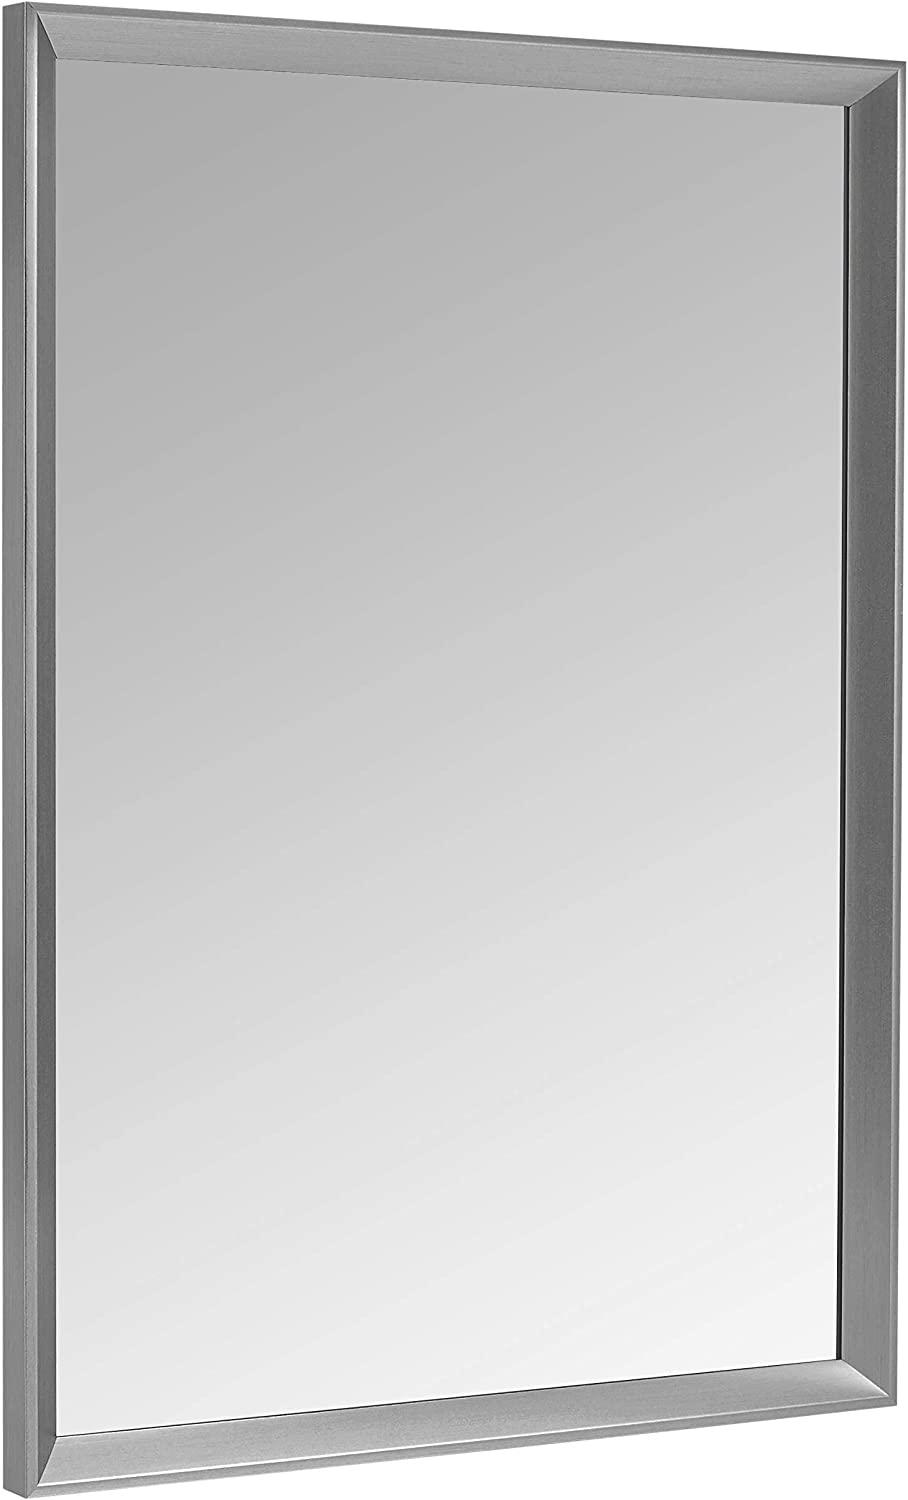 "AmazonBasics Rectangular Wall Mirror - 20"" x 28"", Peaked Trim, Nickel"